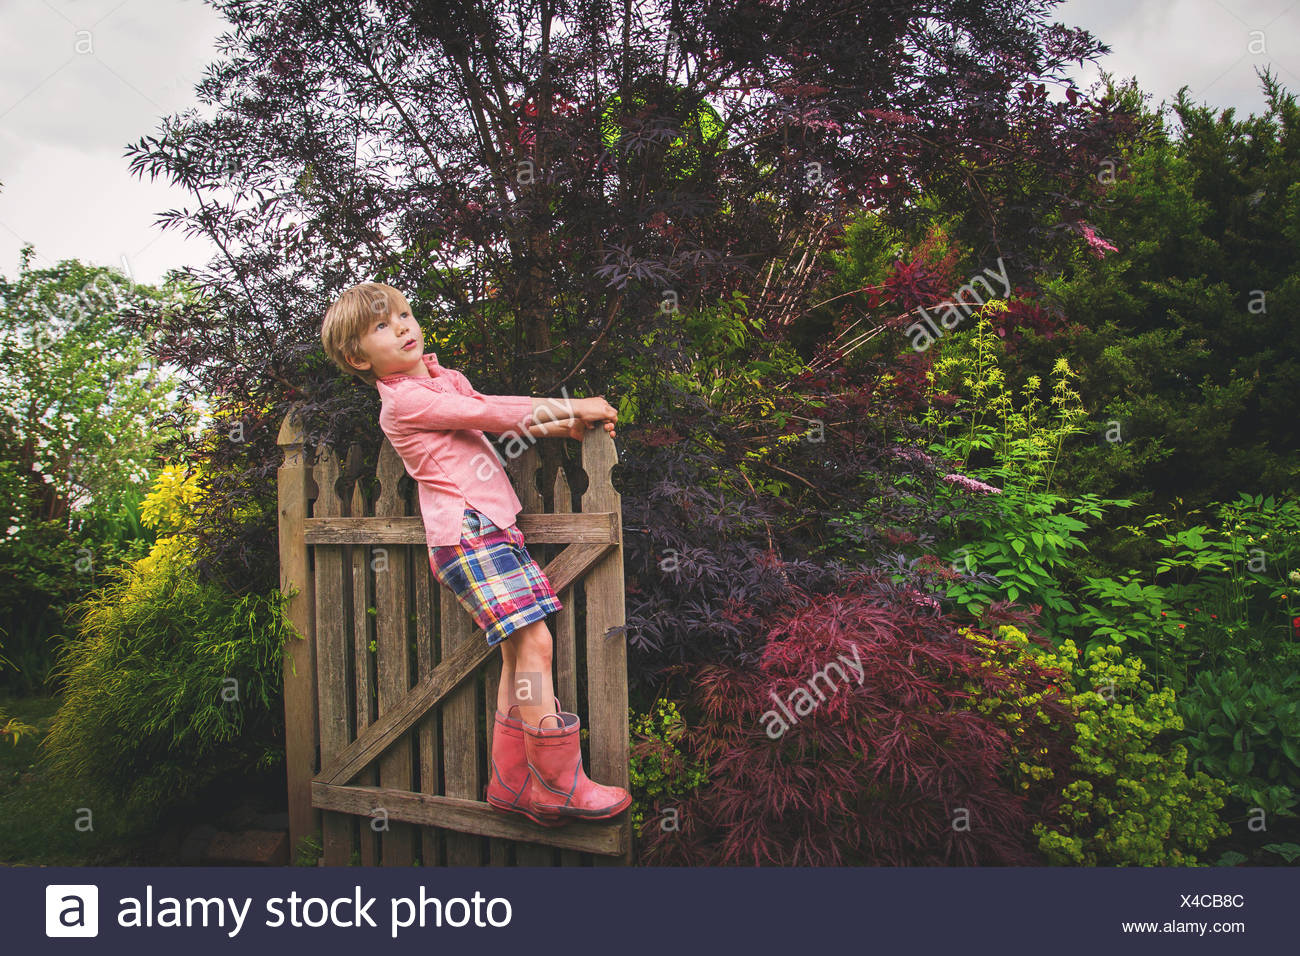 Portrait of a boy standing on wooden gate, looking up - Stock Image